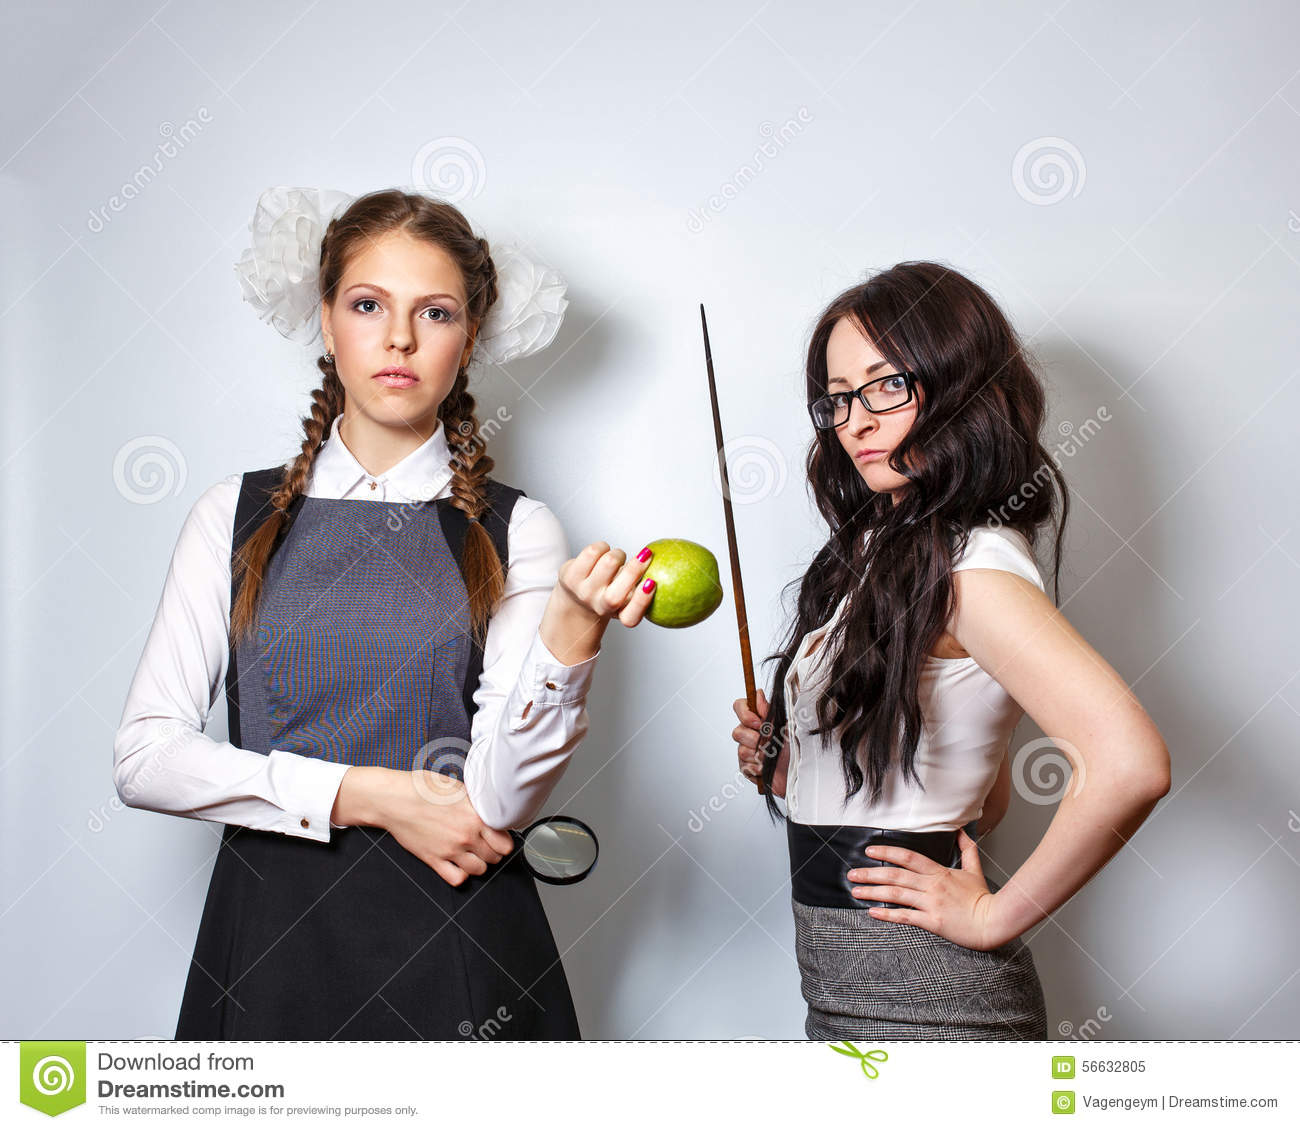 Teacher With Pointer Schoolgirl With Magnifying Glass And Apple